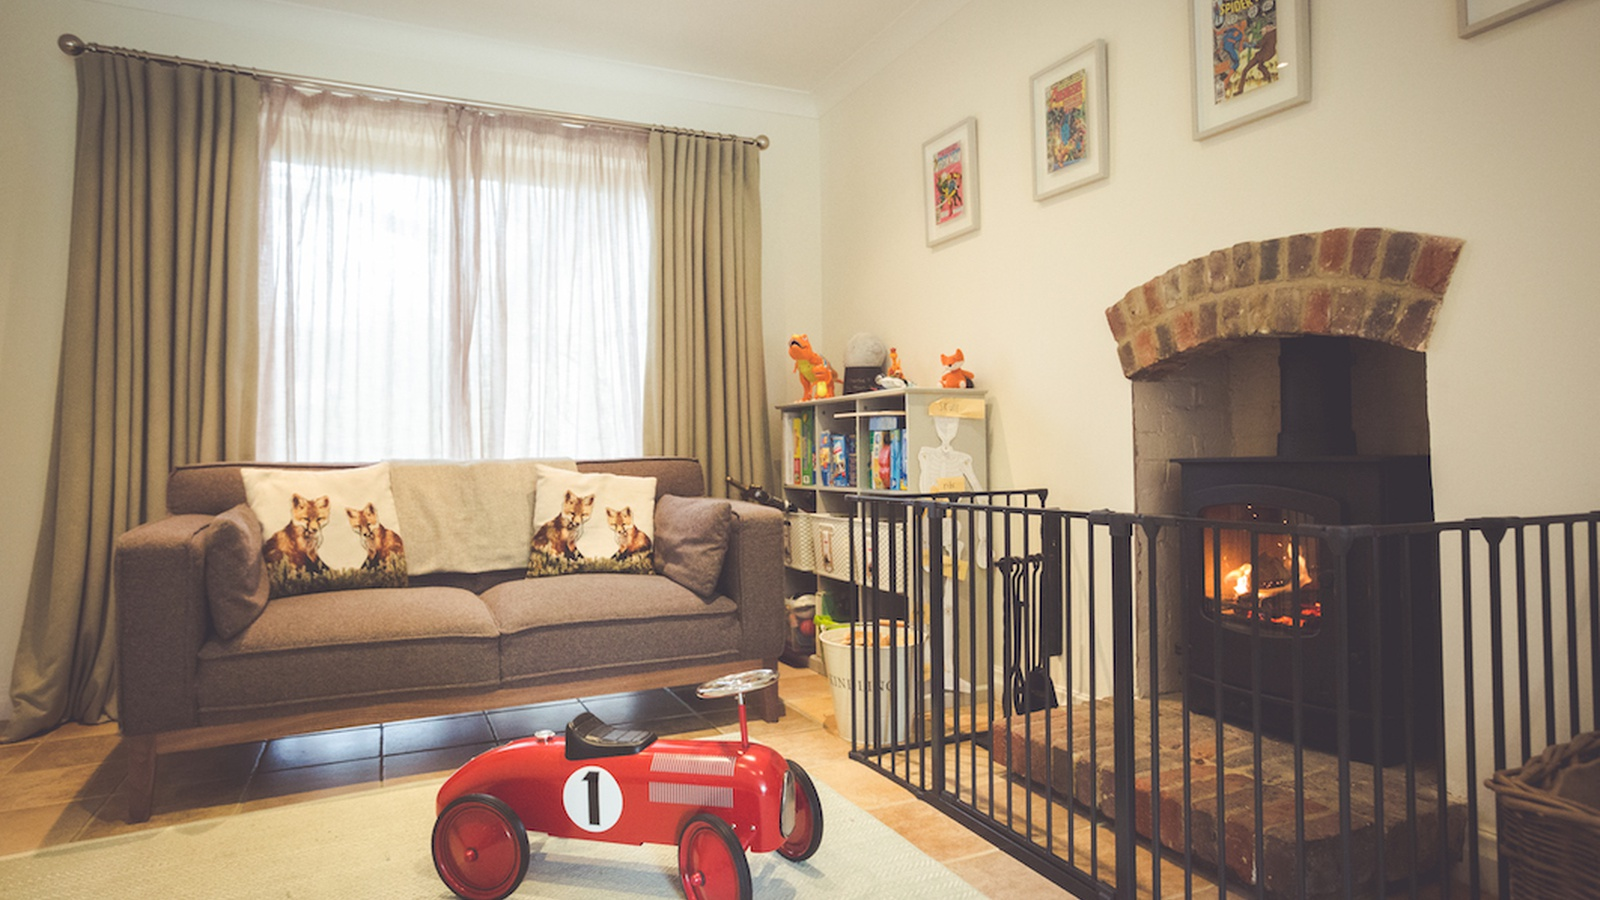 The Charnwood Cove 2 in a playroom with fireguard.